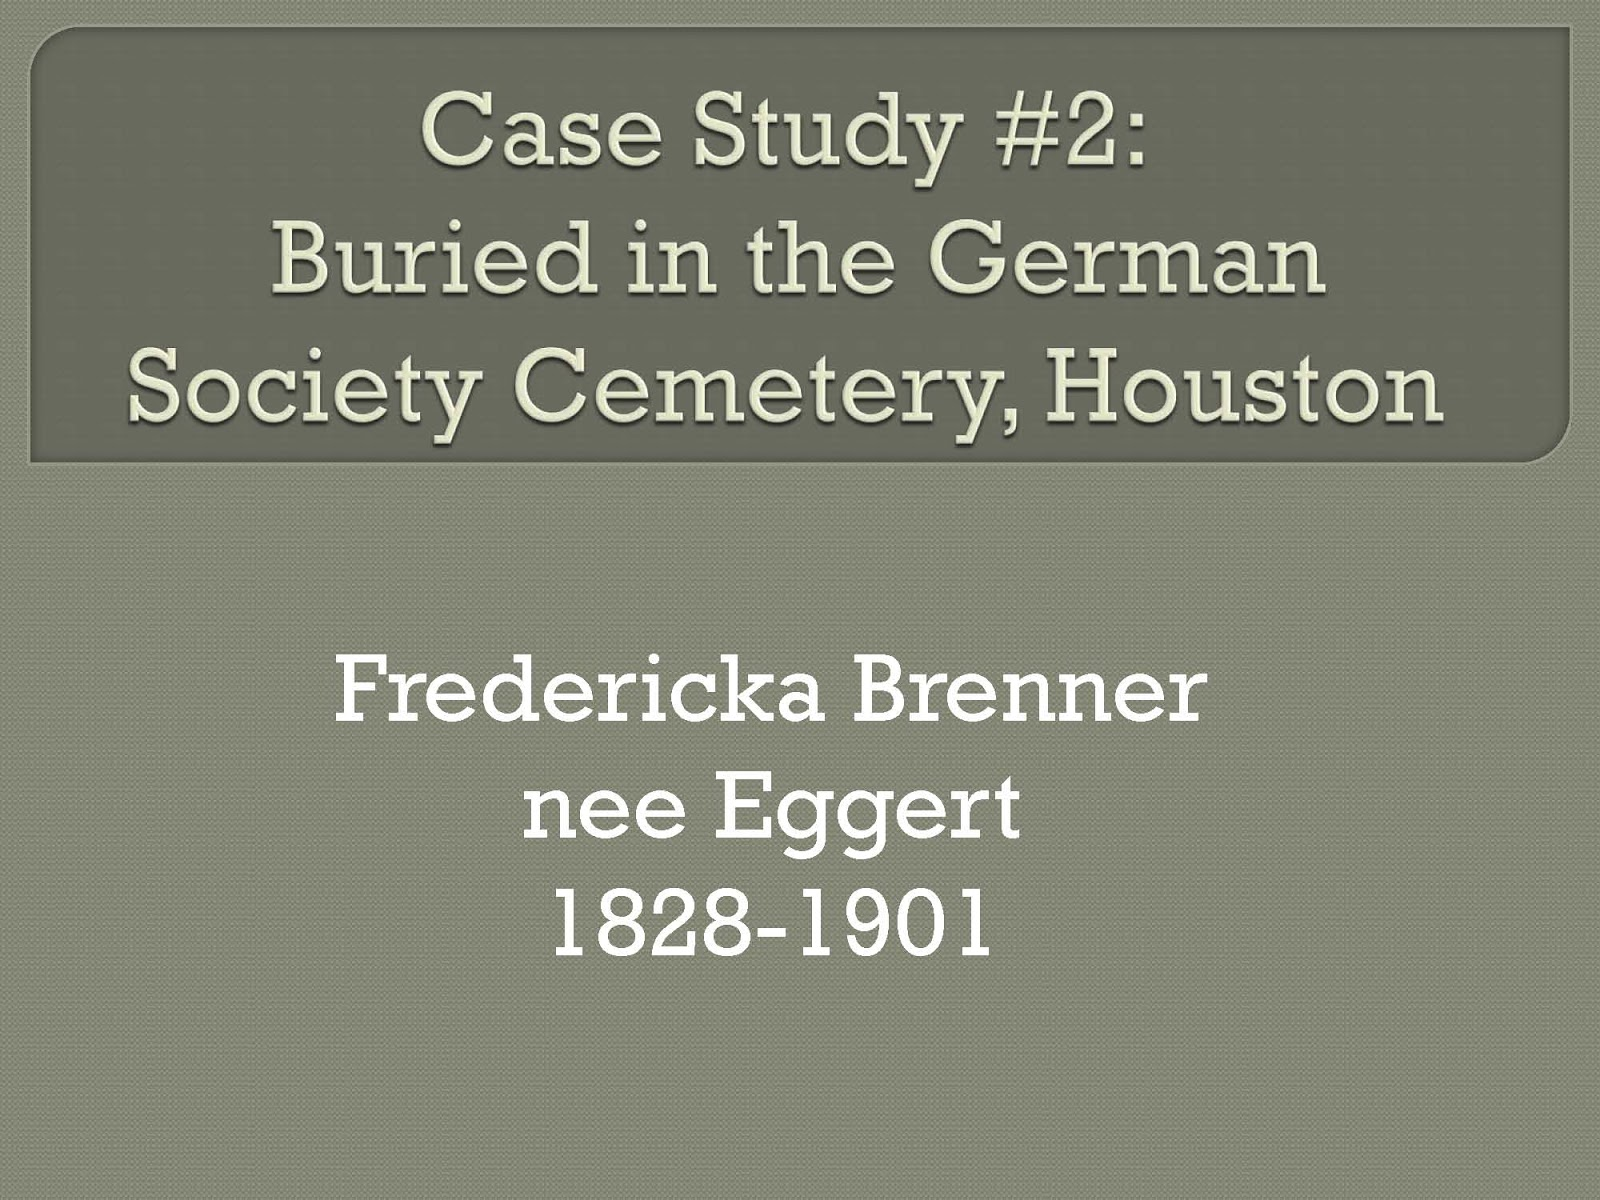 Ancestorpuzzles september 2017 case study 2 buried in the german society cemetery houston fredericka brenner nee eggert 1828 1901 aiddatafo Image collections